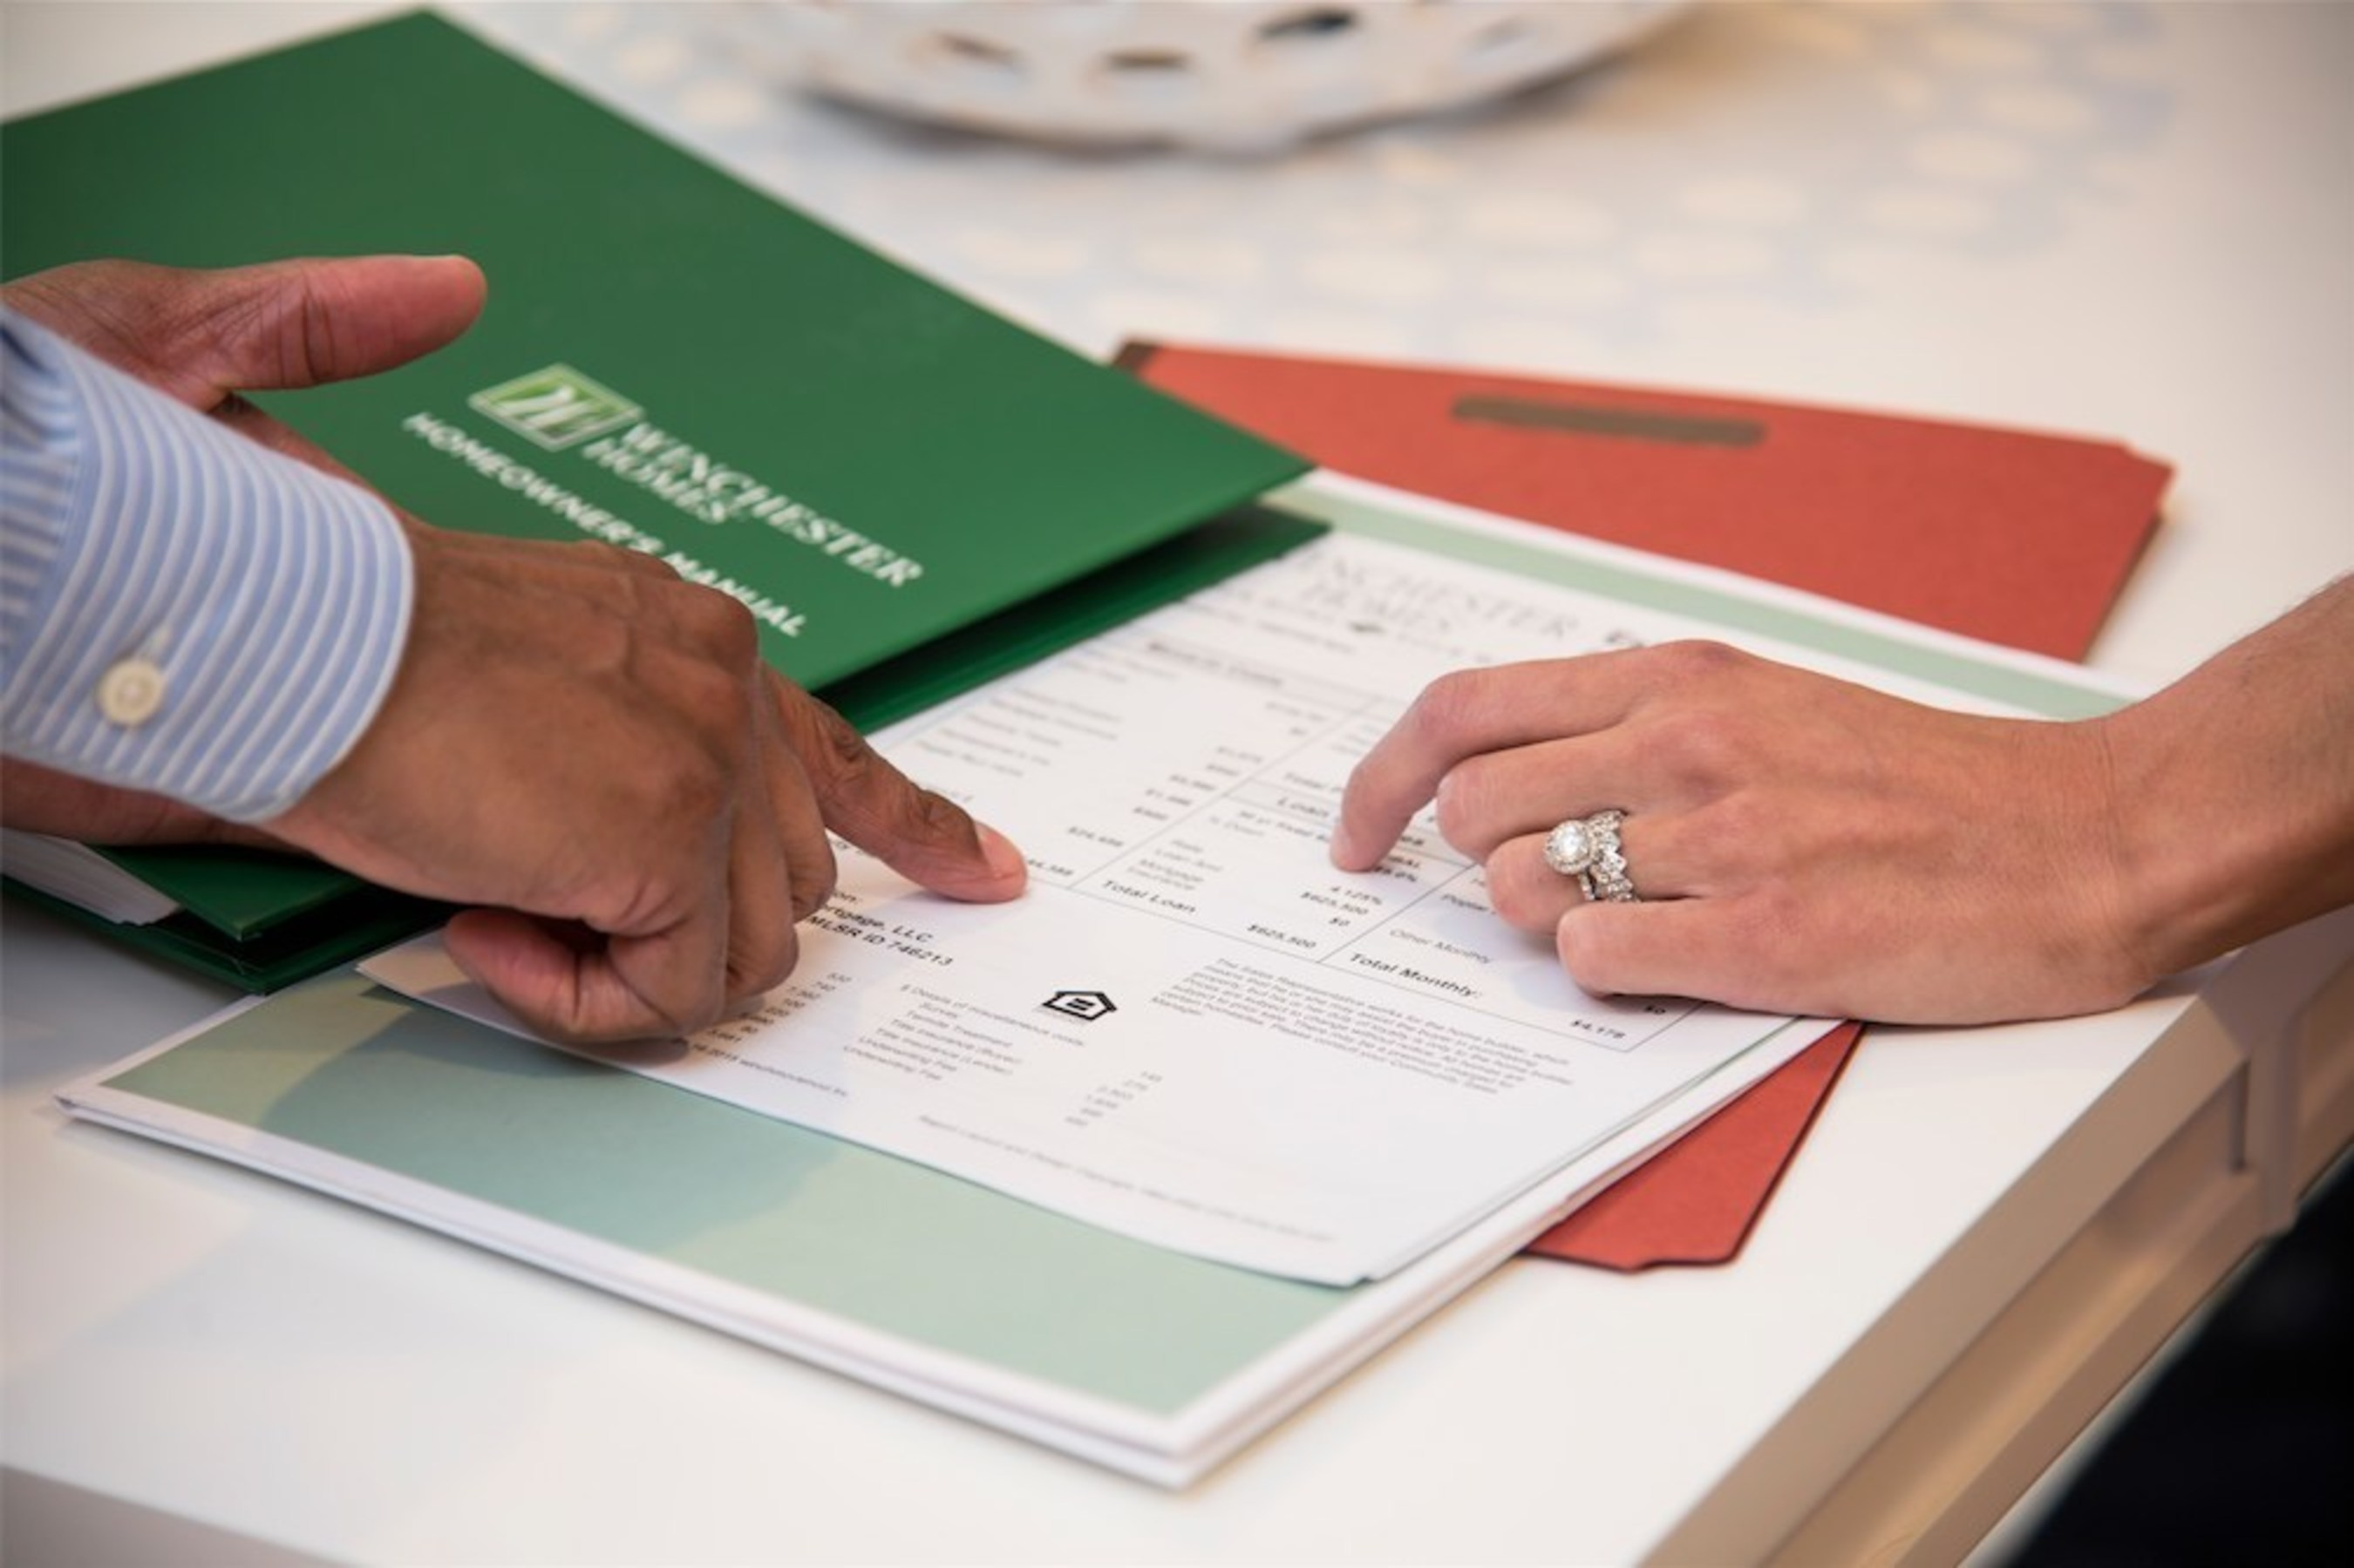 TRI Pointe Connect will offer an integrated team of mortgage loan consultants in the Maryland and Virginia markets, who will provide personalized service, competitive rates, and a wide portfolio of mortgage products to Winchester home buyers - all intended to make the home buying process simple and smooth.